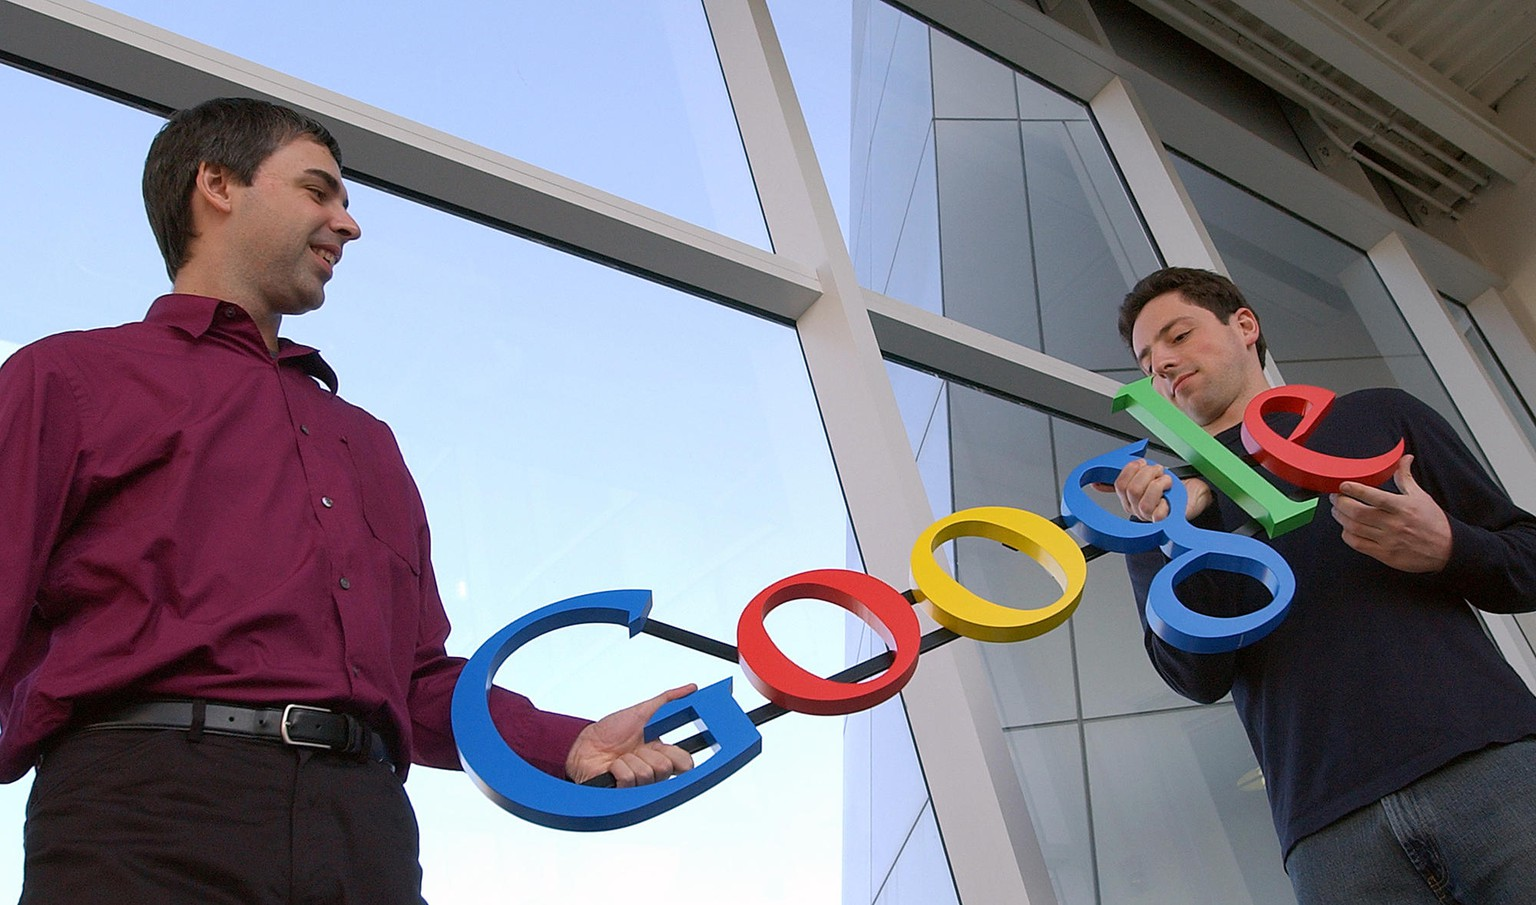 FILE - In this Jan. 15, 2004 file photo, Google co-founders Larry Page, left, and Sergey Brin pose for photos at their company's headquarters in Mountain View, Calif. Google's IPO 10 years ago launched the company on a trajectory that continues to reshape its business and much of the world in its orbit. (AP Photo/Ben Margot, File)